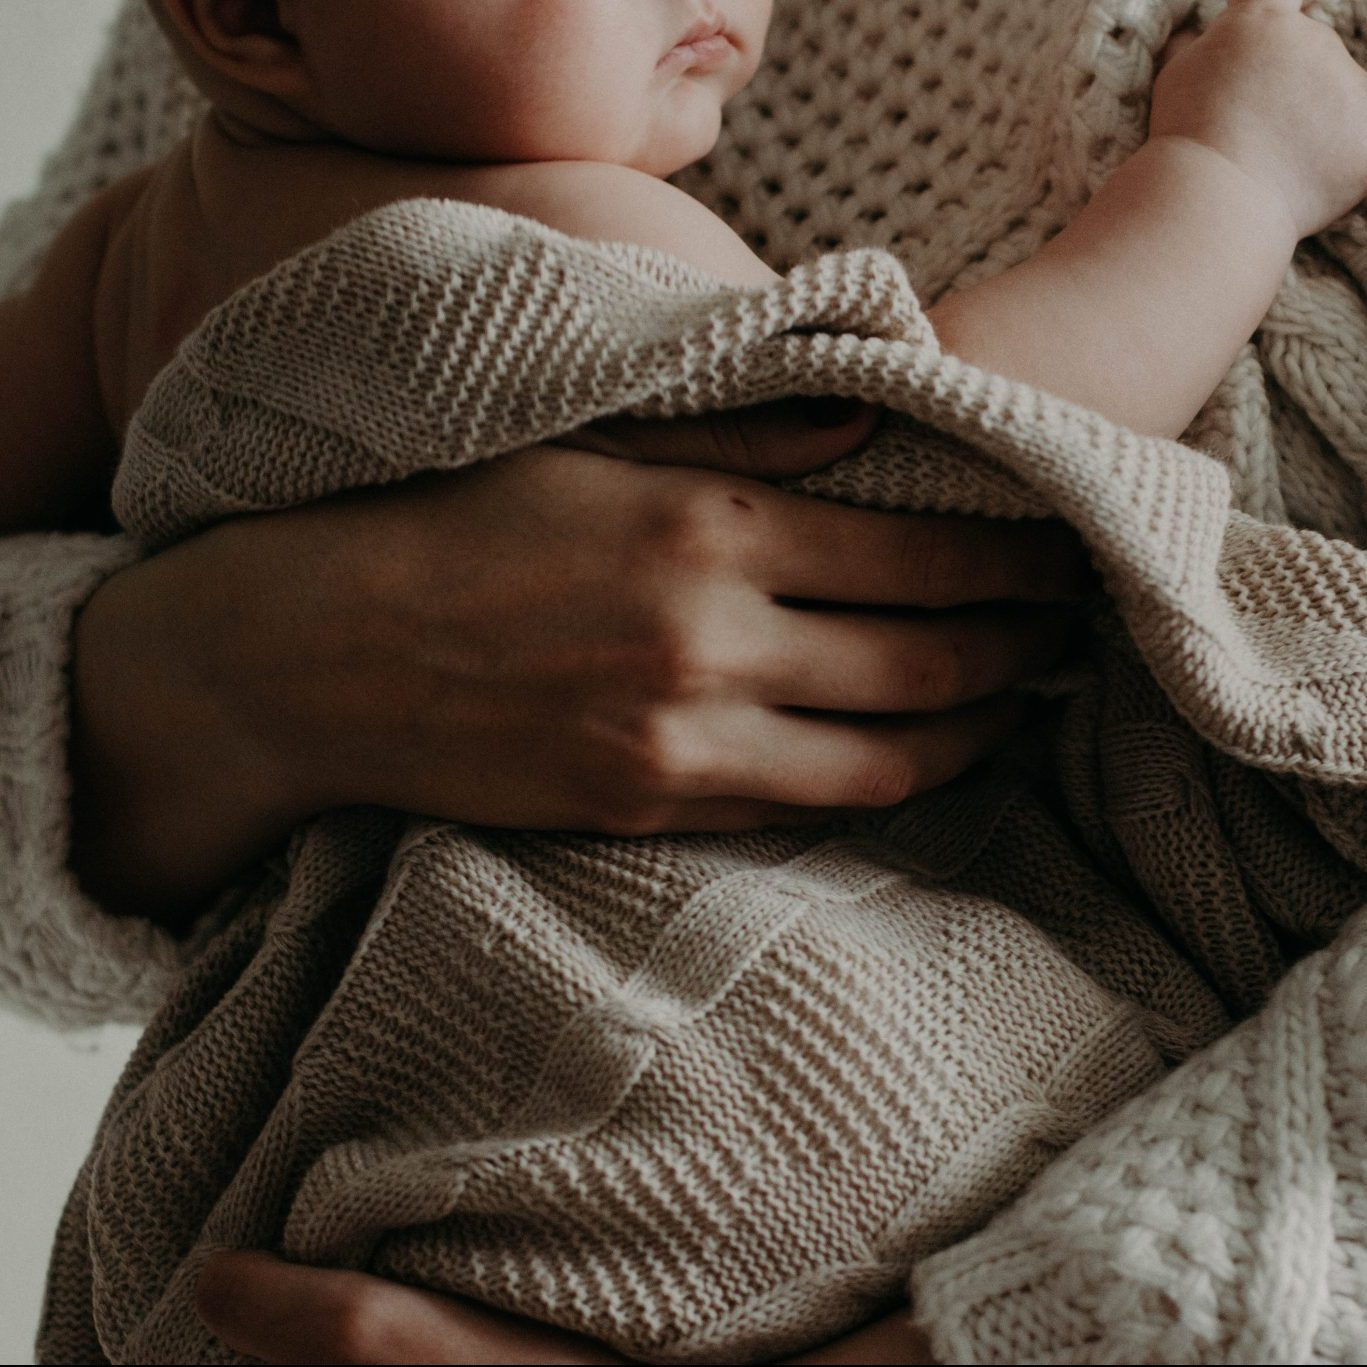 a newborn baby wrapped in a cream blanket, being held